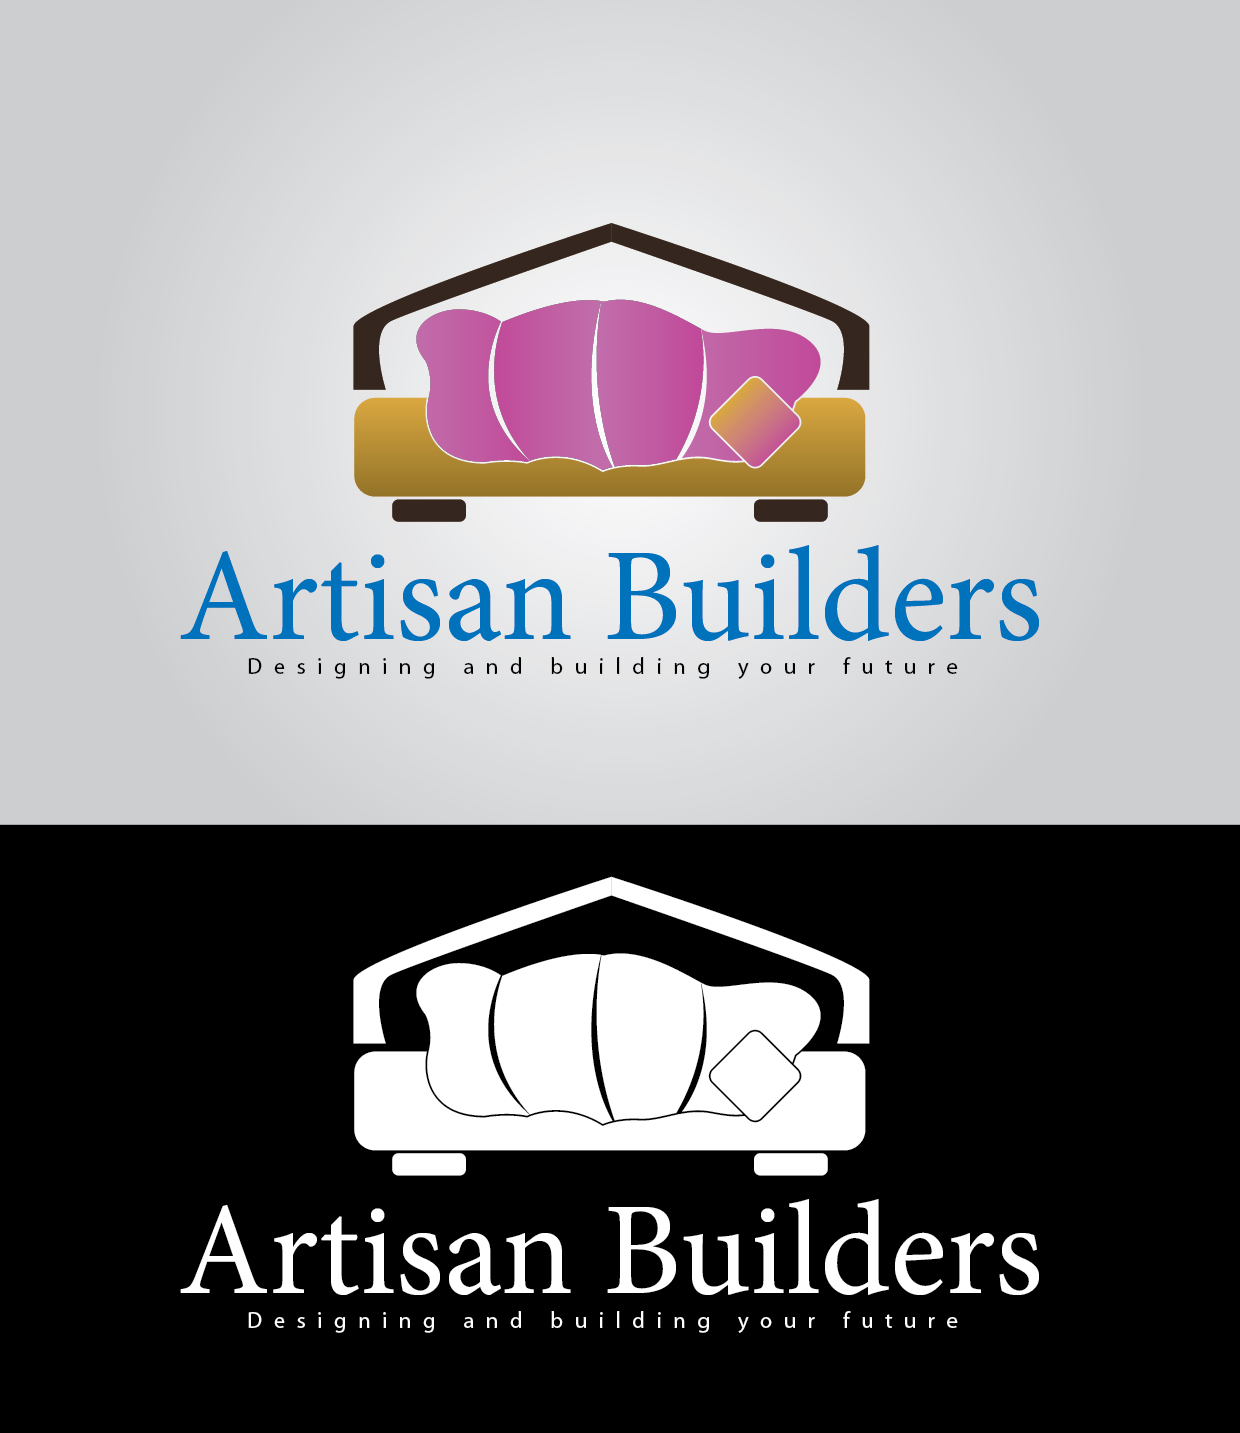 Logo Design by mediaproductionart - Entry No. 43 in the Logo Design Contest Captivating Logo Design for Artisan Builders.